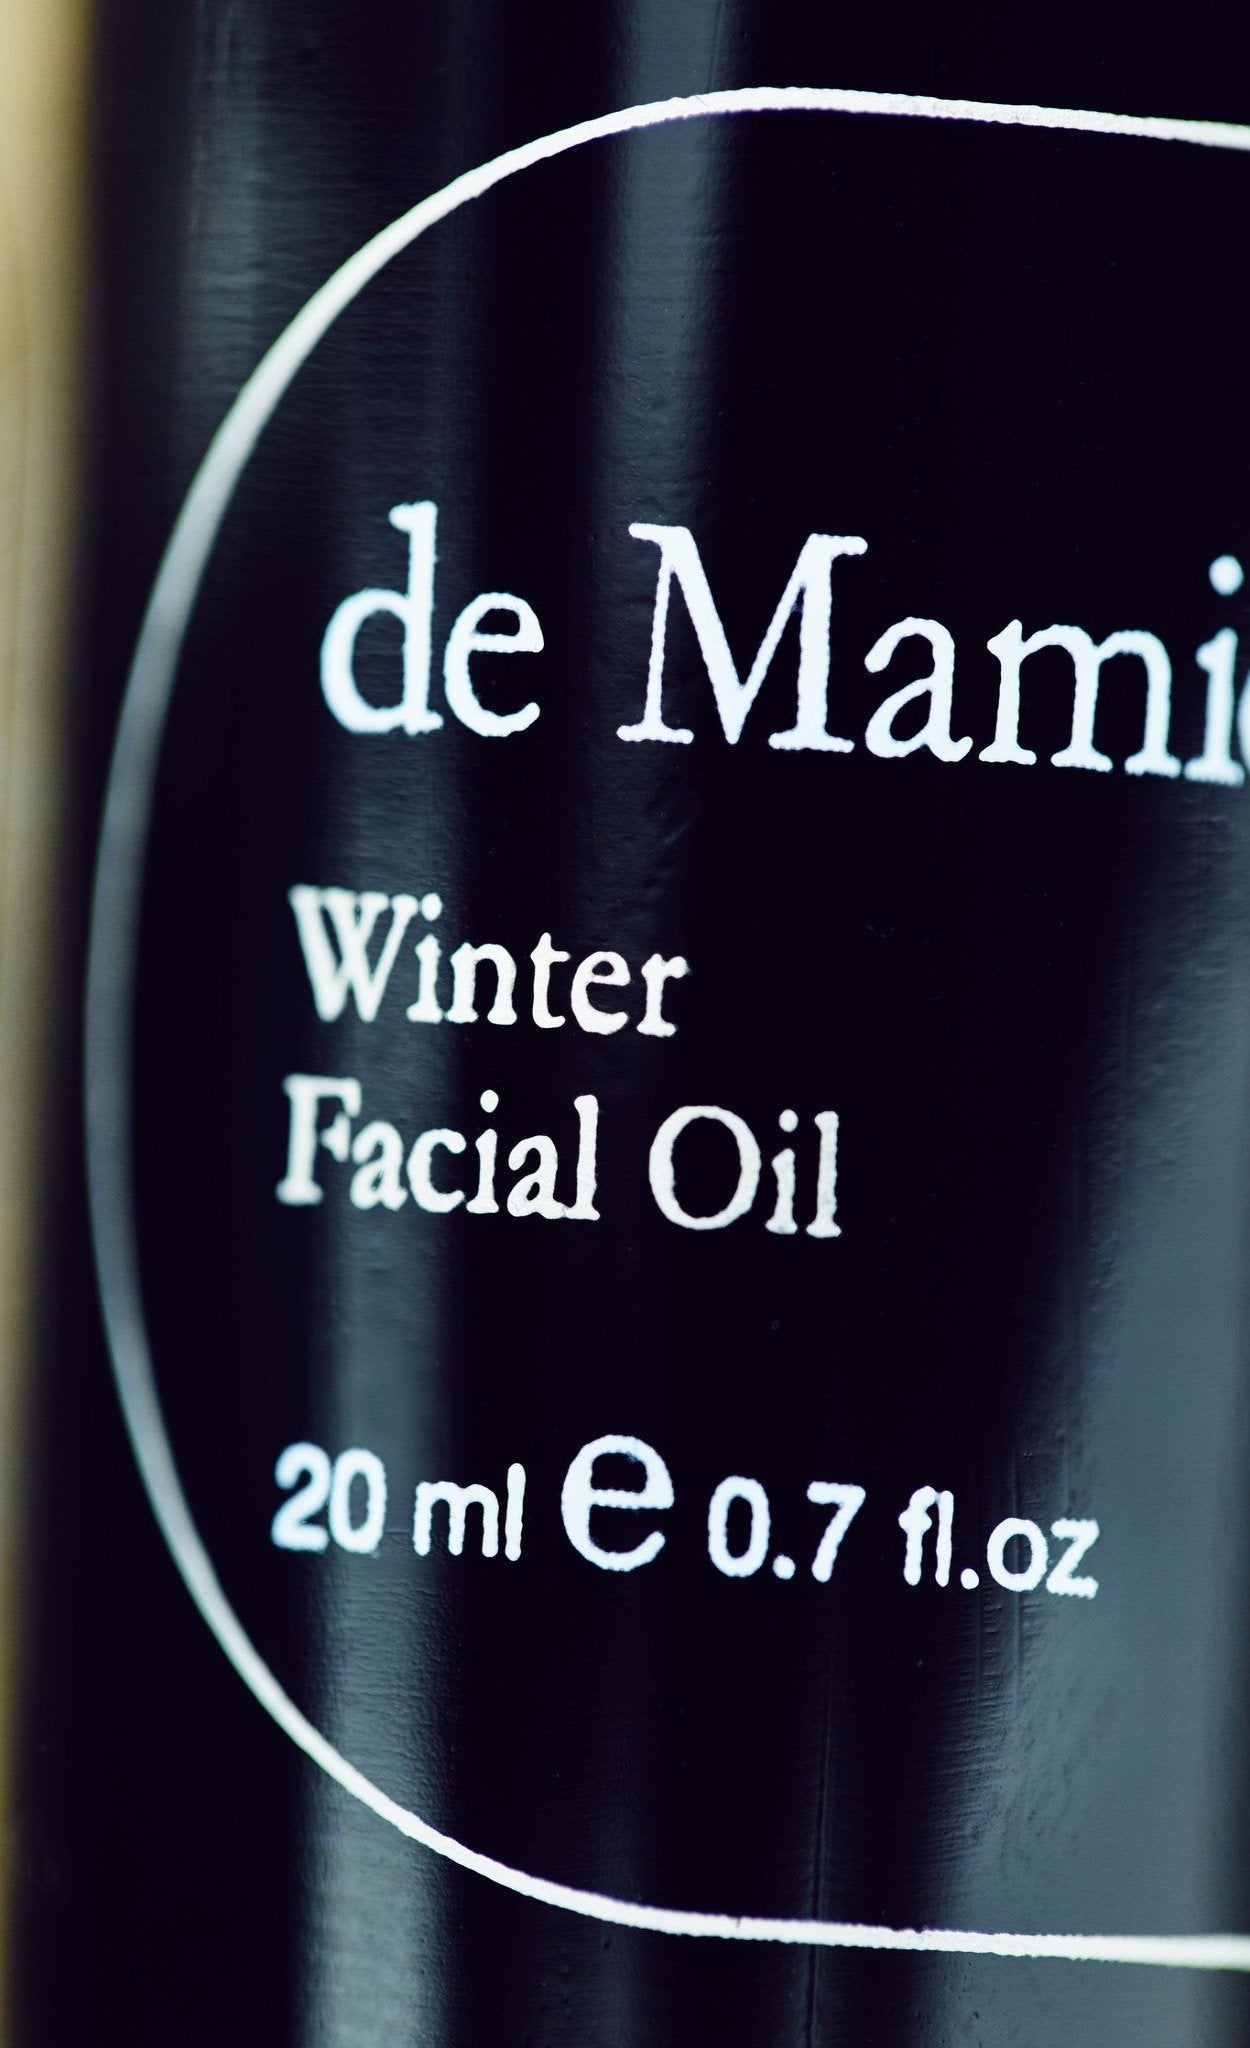 deMamiel Winter Facial Oil - biologish, handgeblend